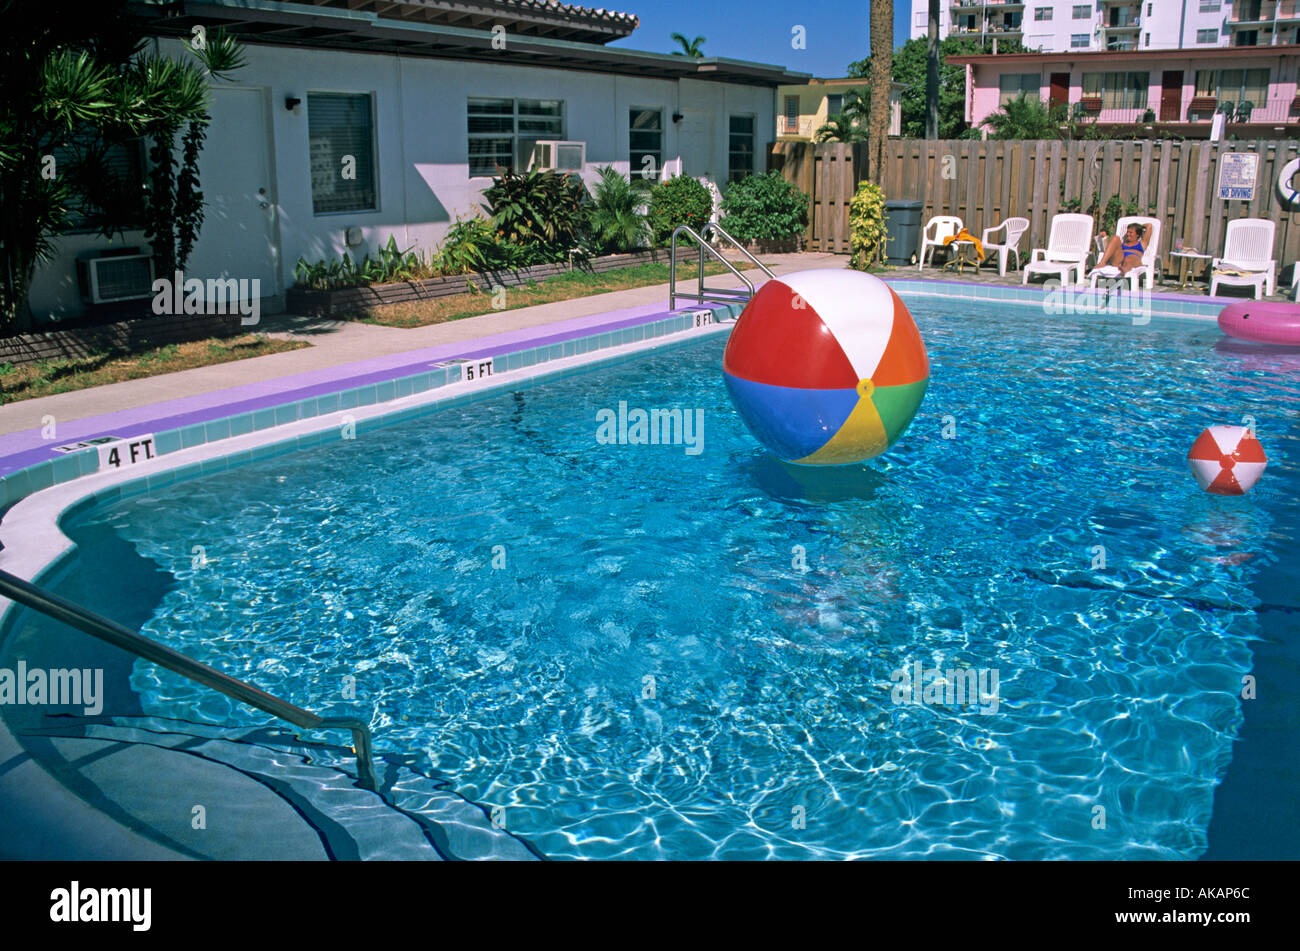 Beach Ball In Pool On Colourful Beach Balls Floating In Swimming Pool At The Beach Ball Motel Fort Lauderdale Florida Usa